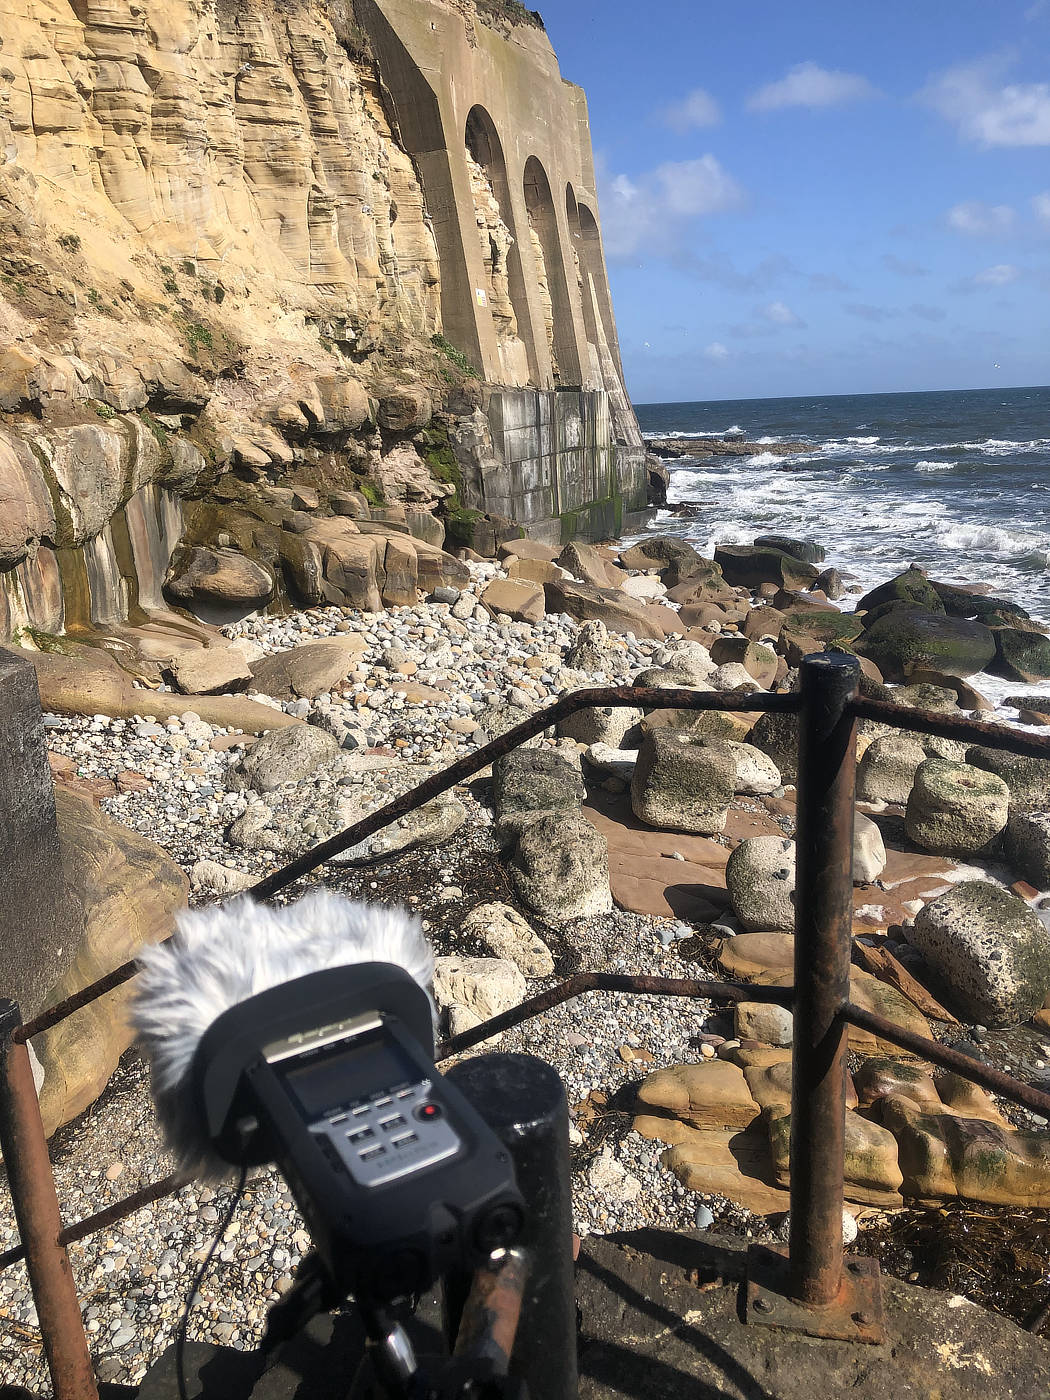 Recording the sound of the waves and the nesting kittiwakes at the bottom of Tynemouth Priory cliffs.